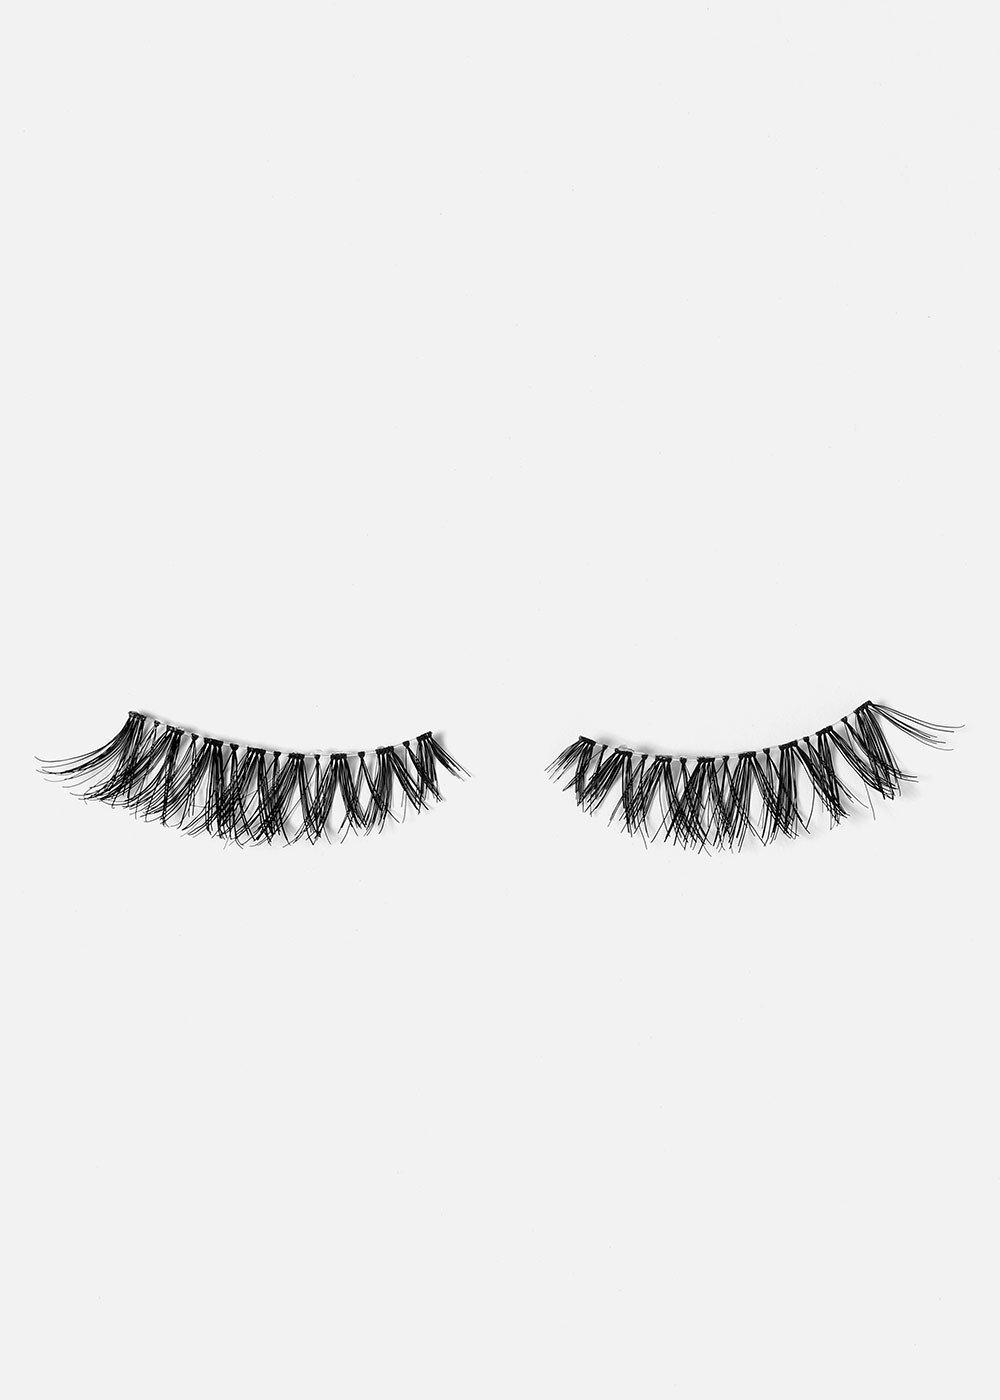 14a390fc761 AOA Studio Eyelashes 6 Pack: Buy sell online False Eyelashes with cheap  price | Lazada PH